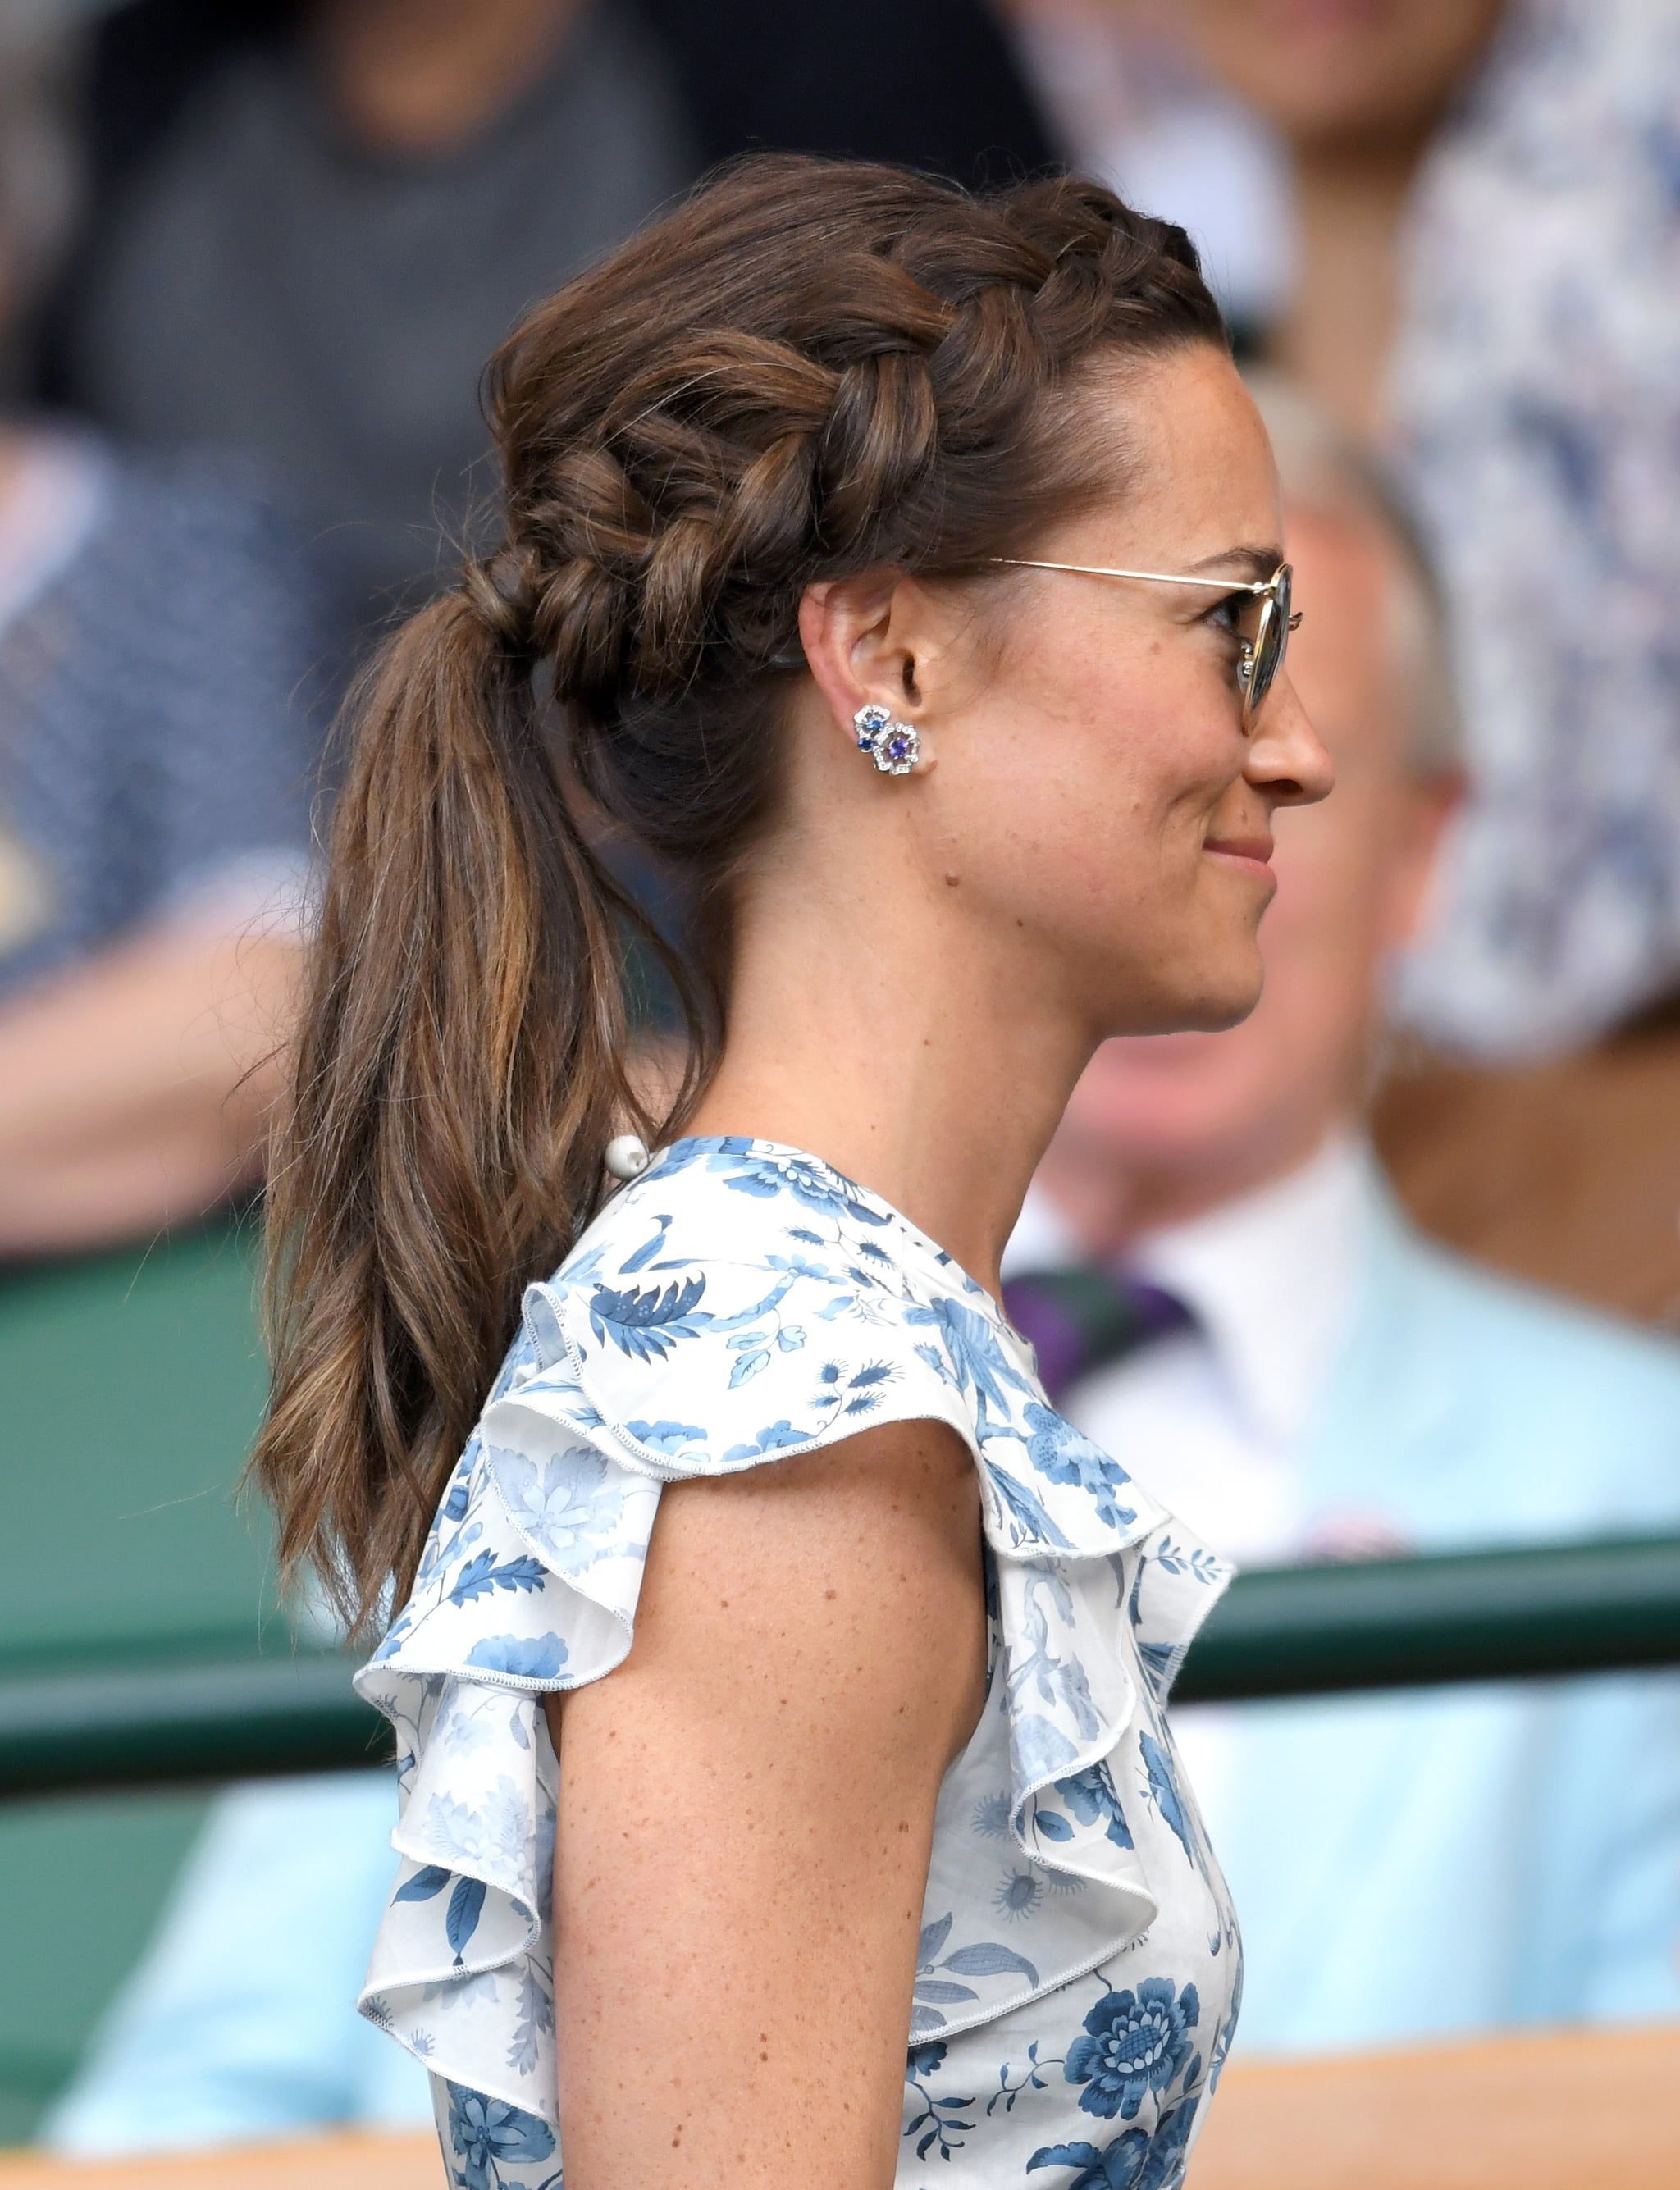 Pippa Middleton Rounds Out Our Favorite Wimbledon Trio In A Romantic Floral Dress Pippa Middleton Dress Kate Middleton Hair Hair Styles